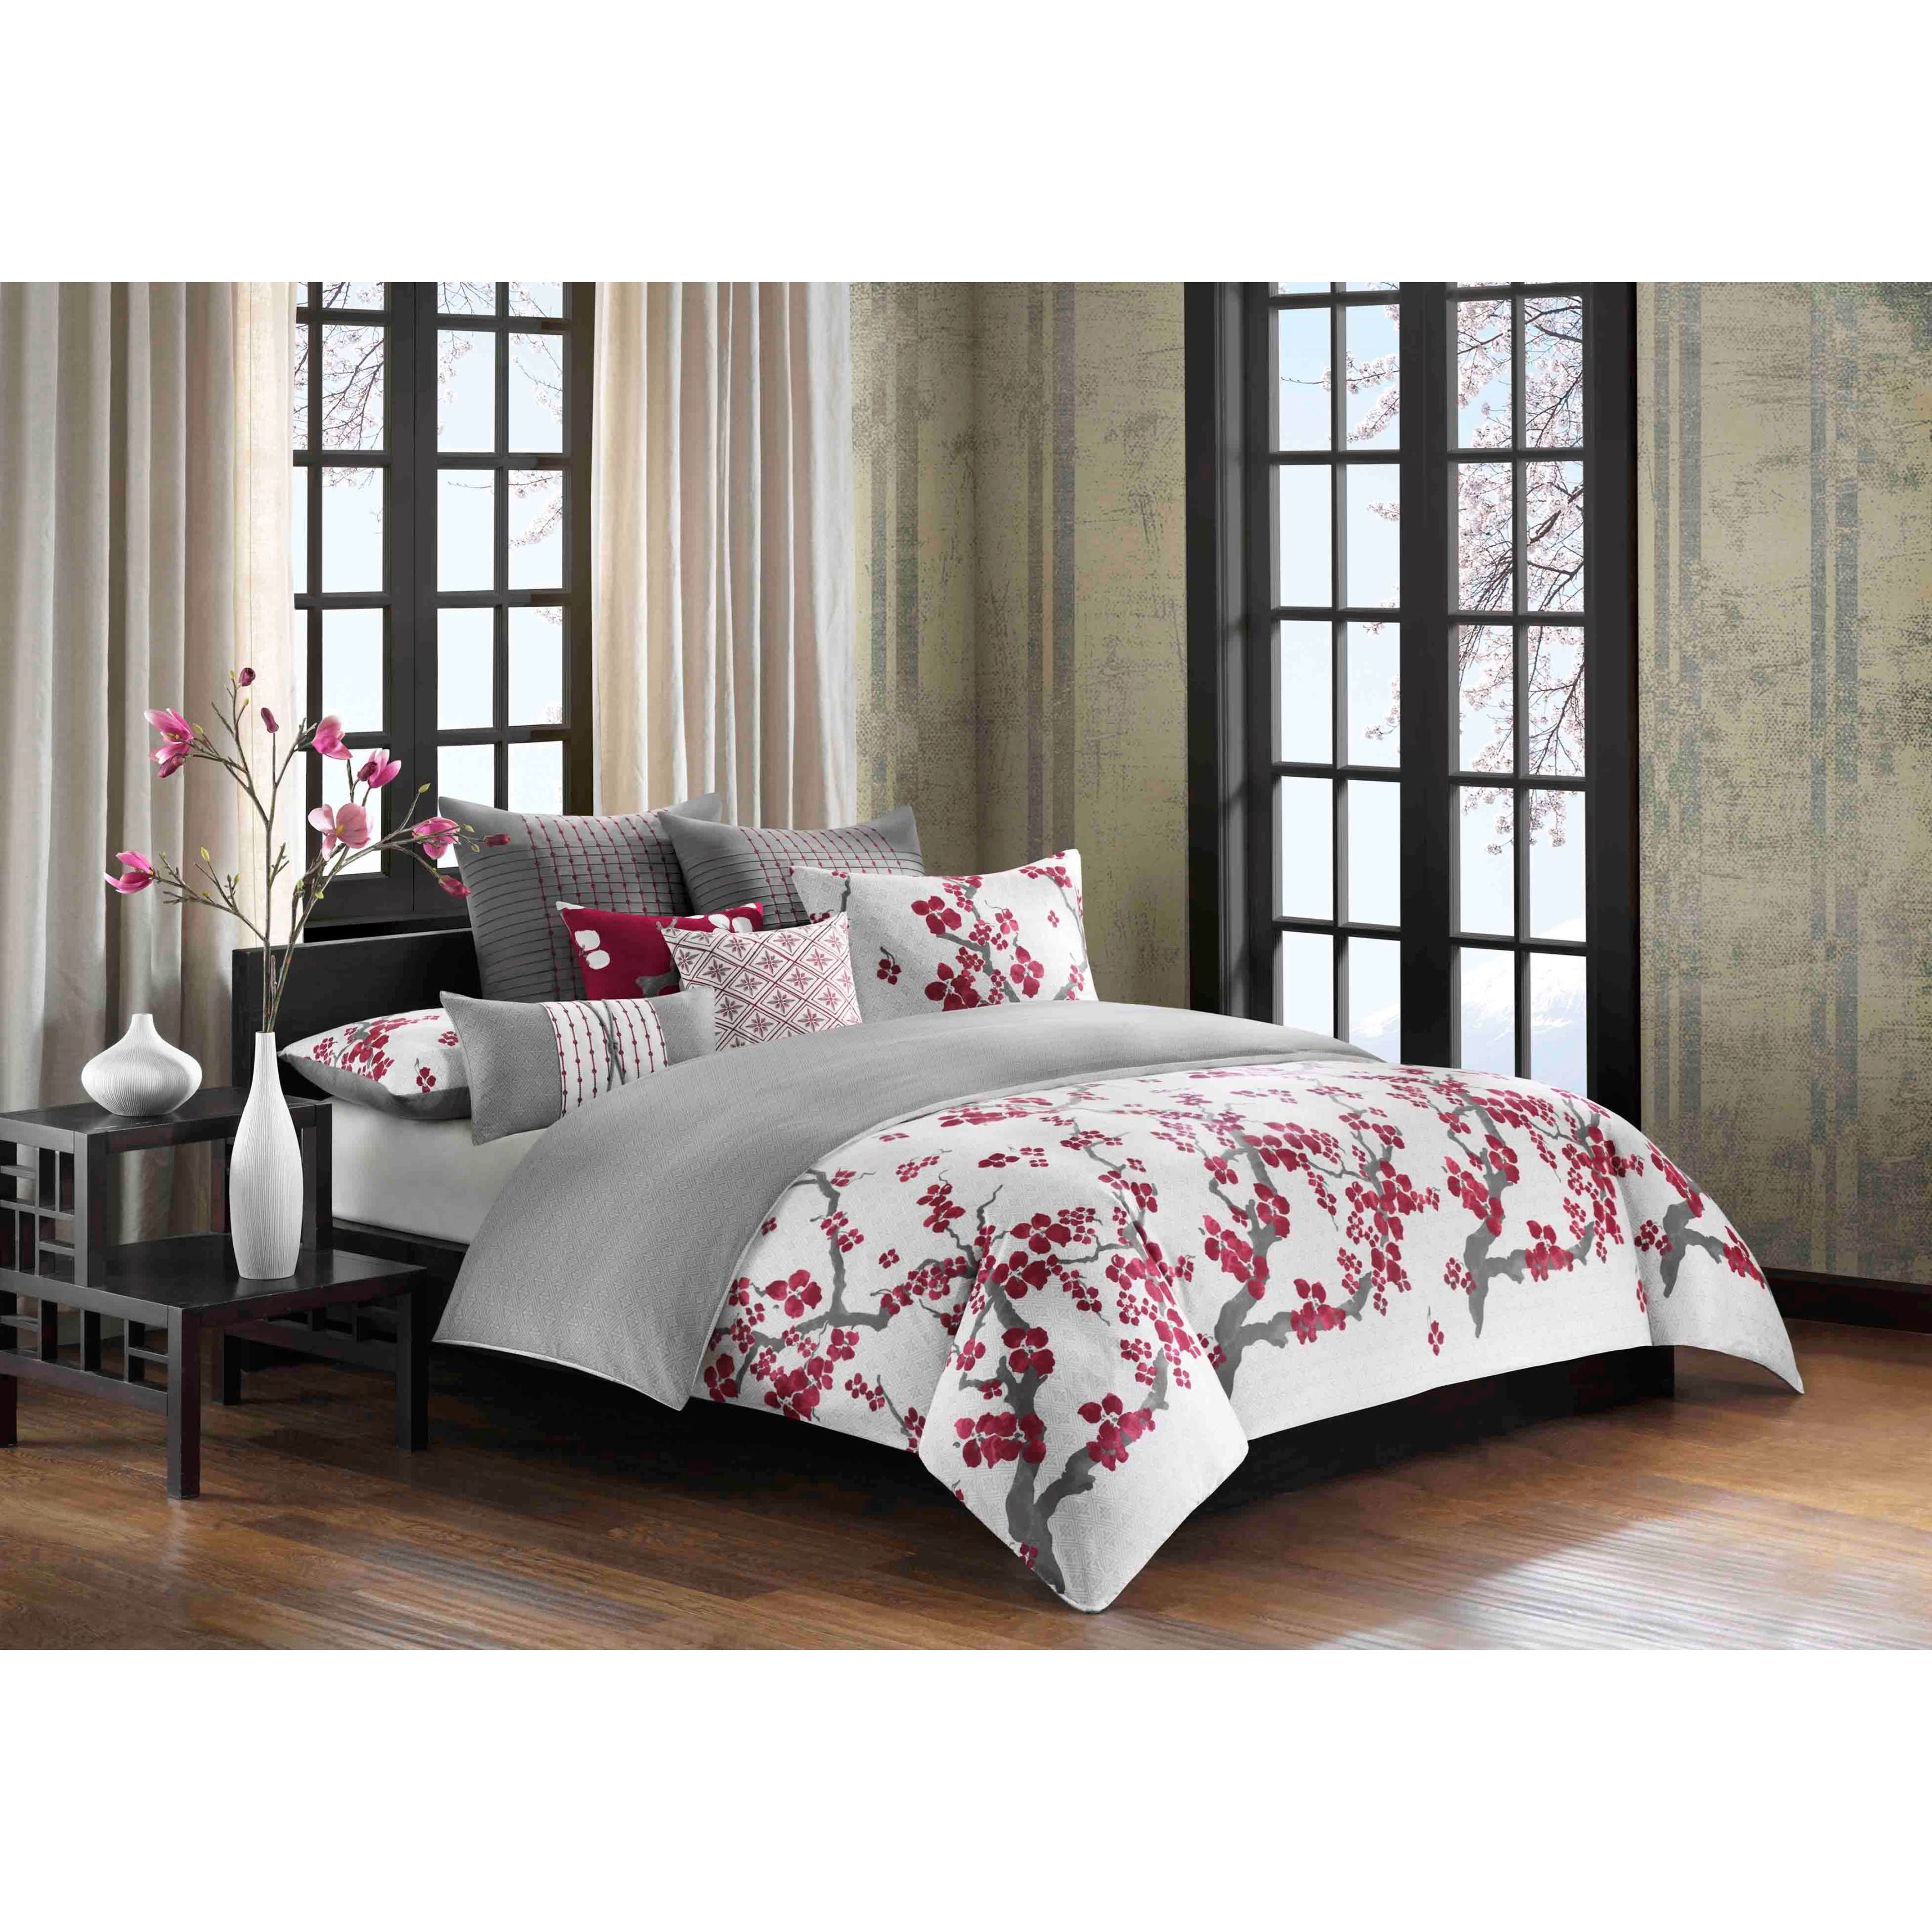 N Natori Cherry Blossom Multi Cotton Duvet Cover Mini Set Free Shipping Today 19324135